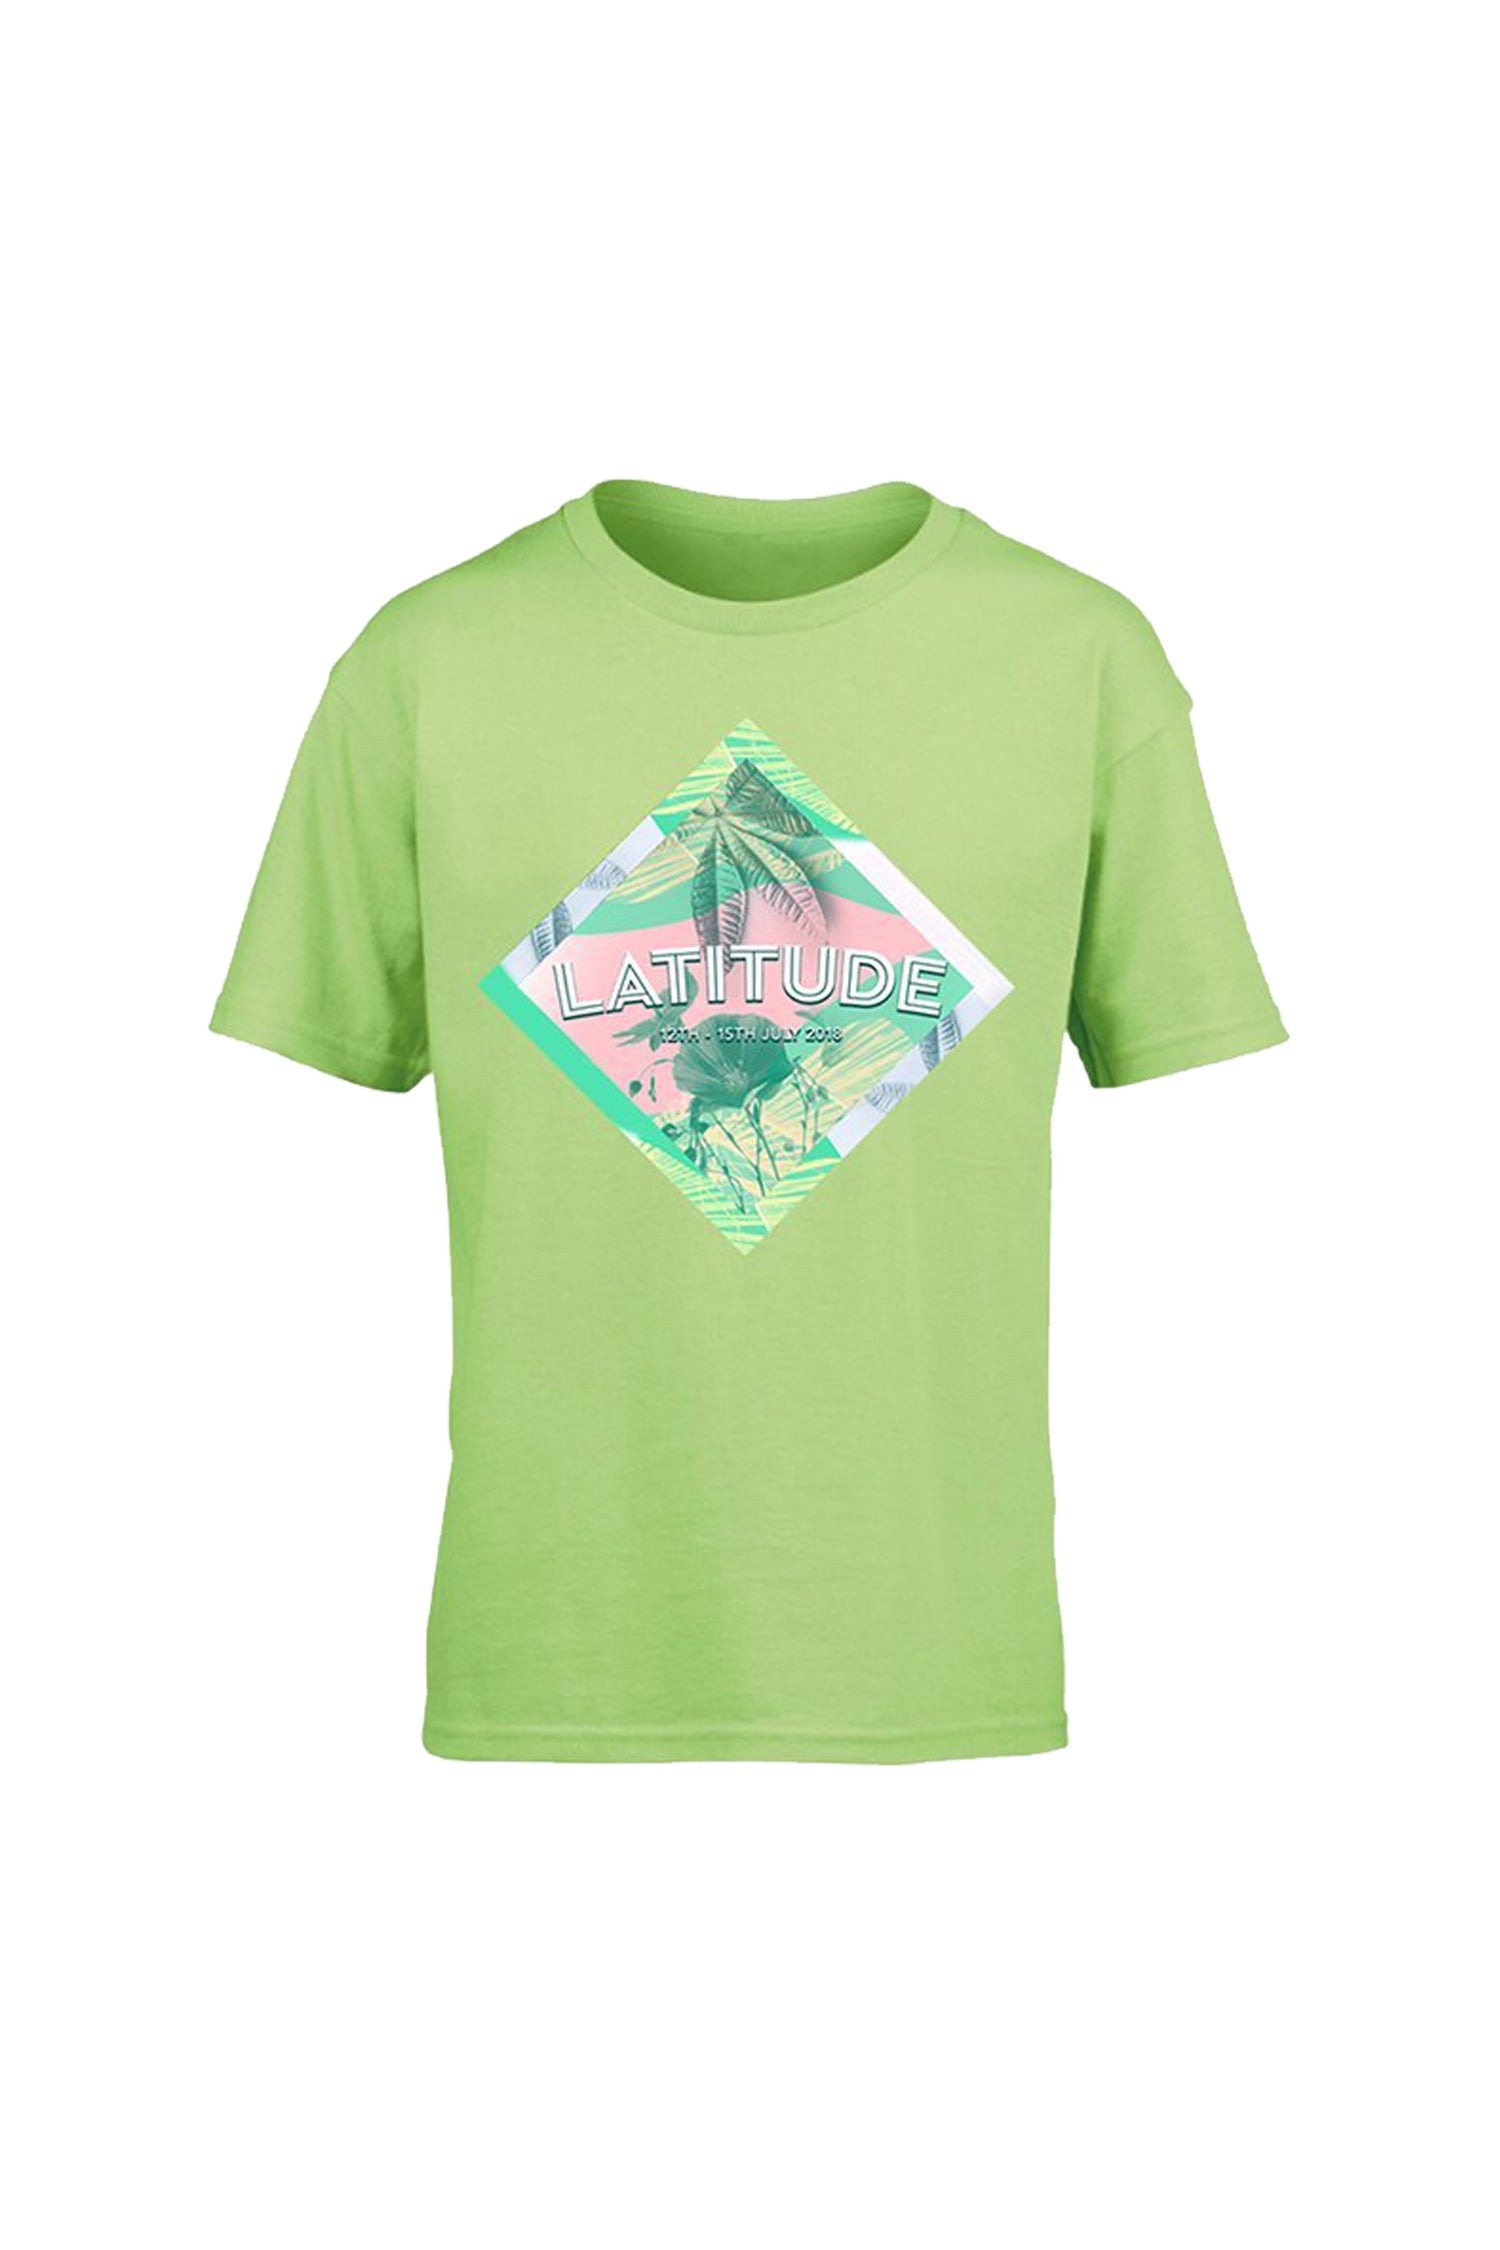 2018 Green Event Kids T-Shirt